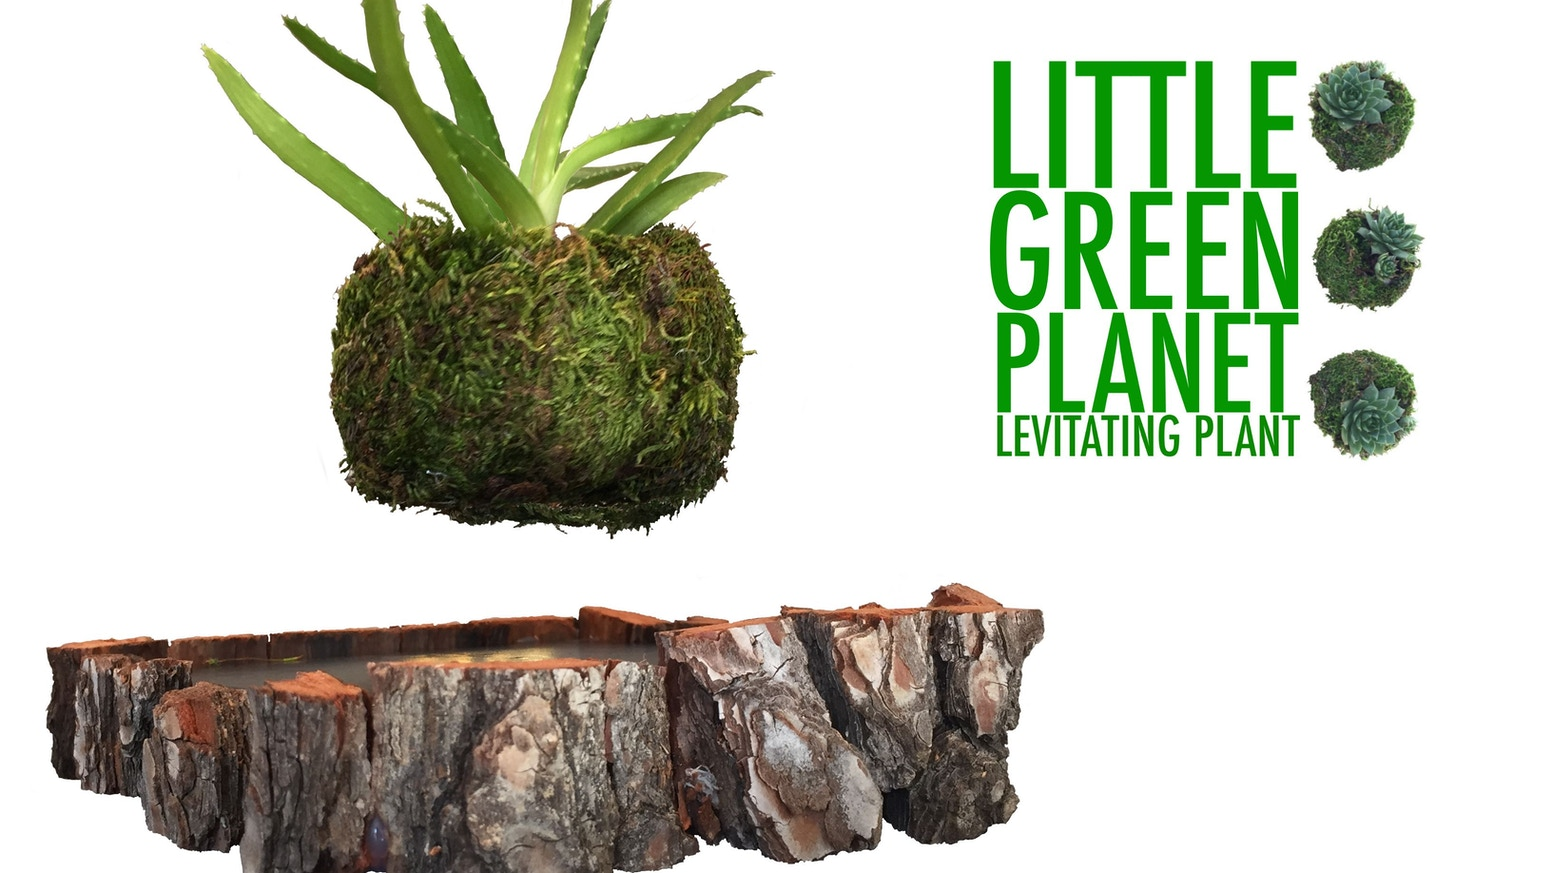 Grow your very own Little Green Plant, on a magical levitating moss planet  right on